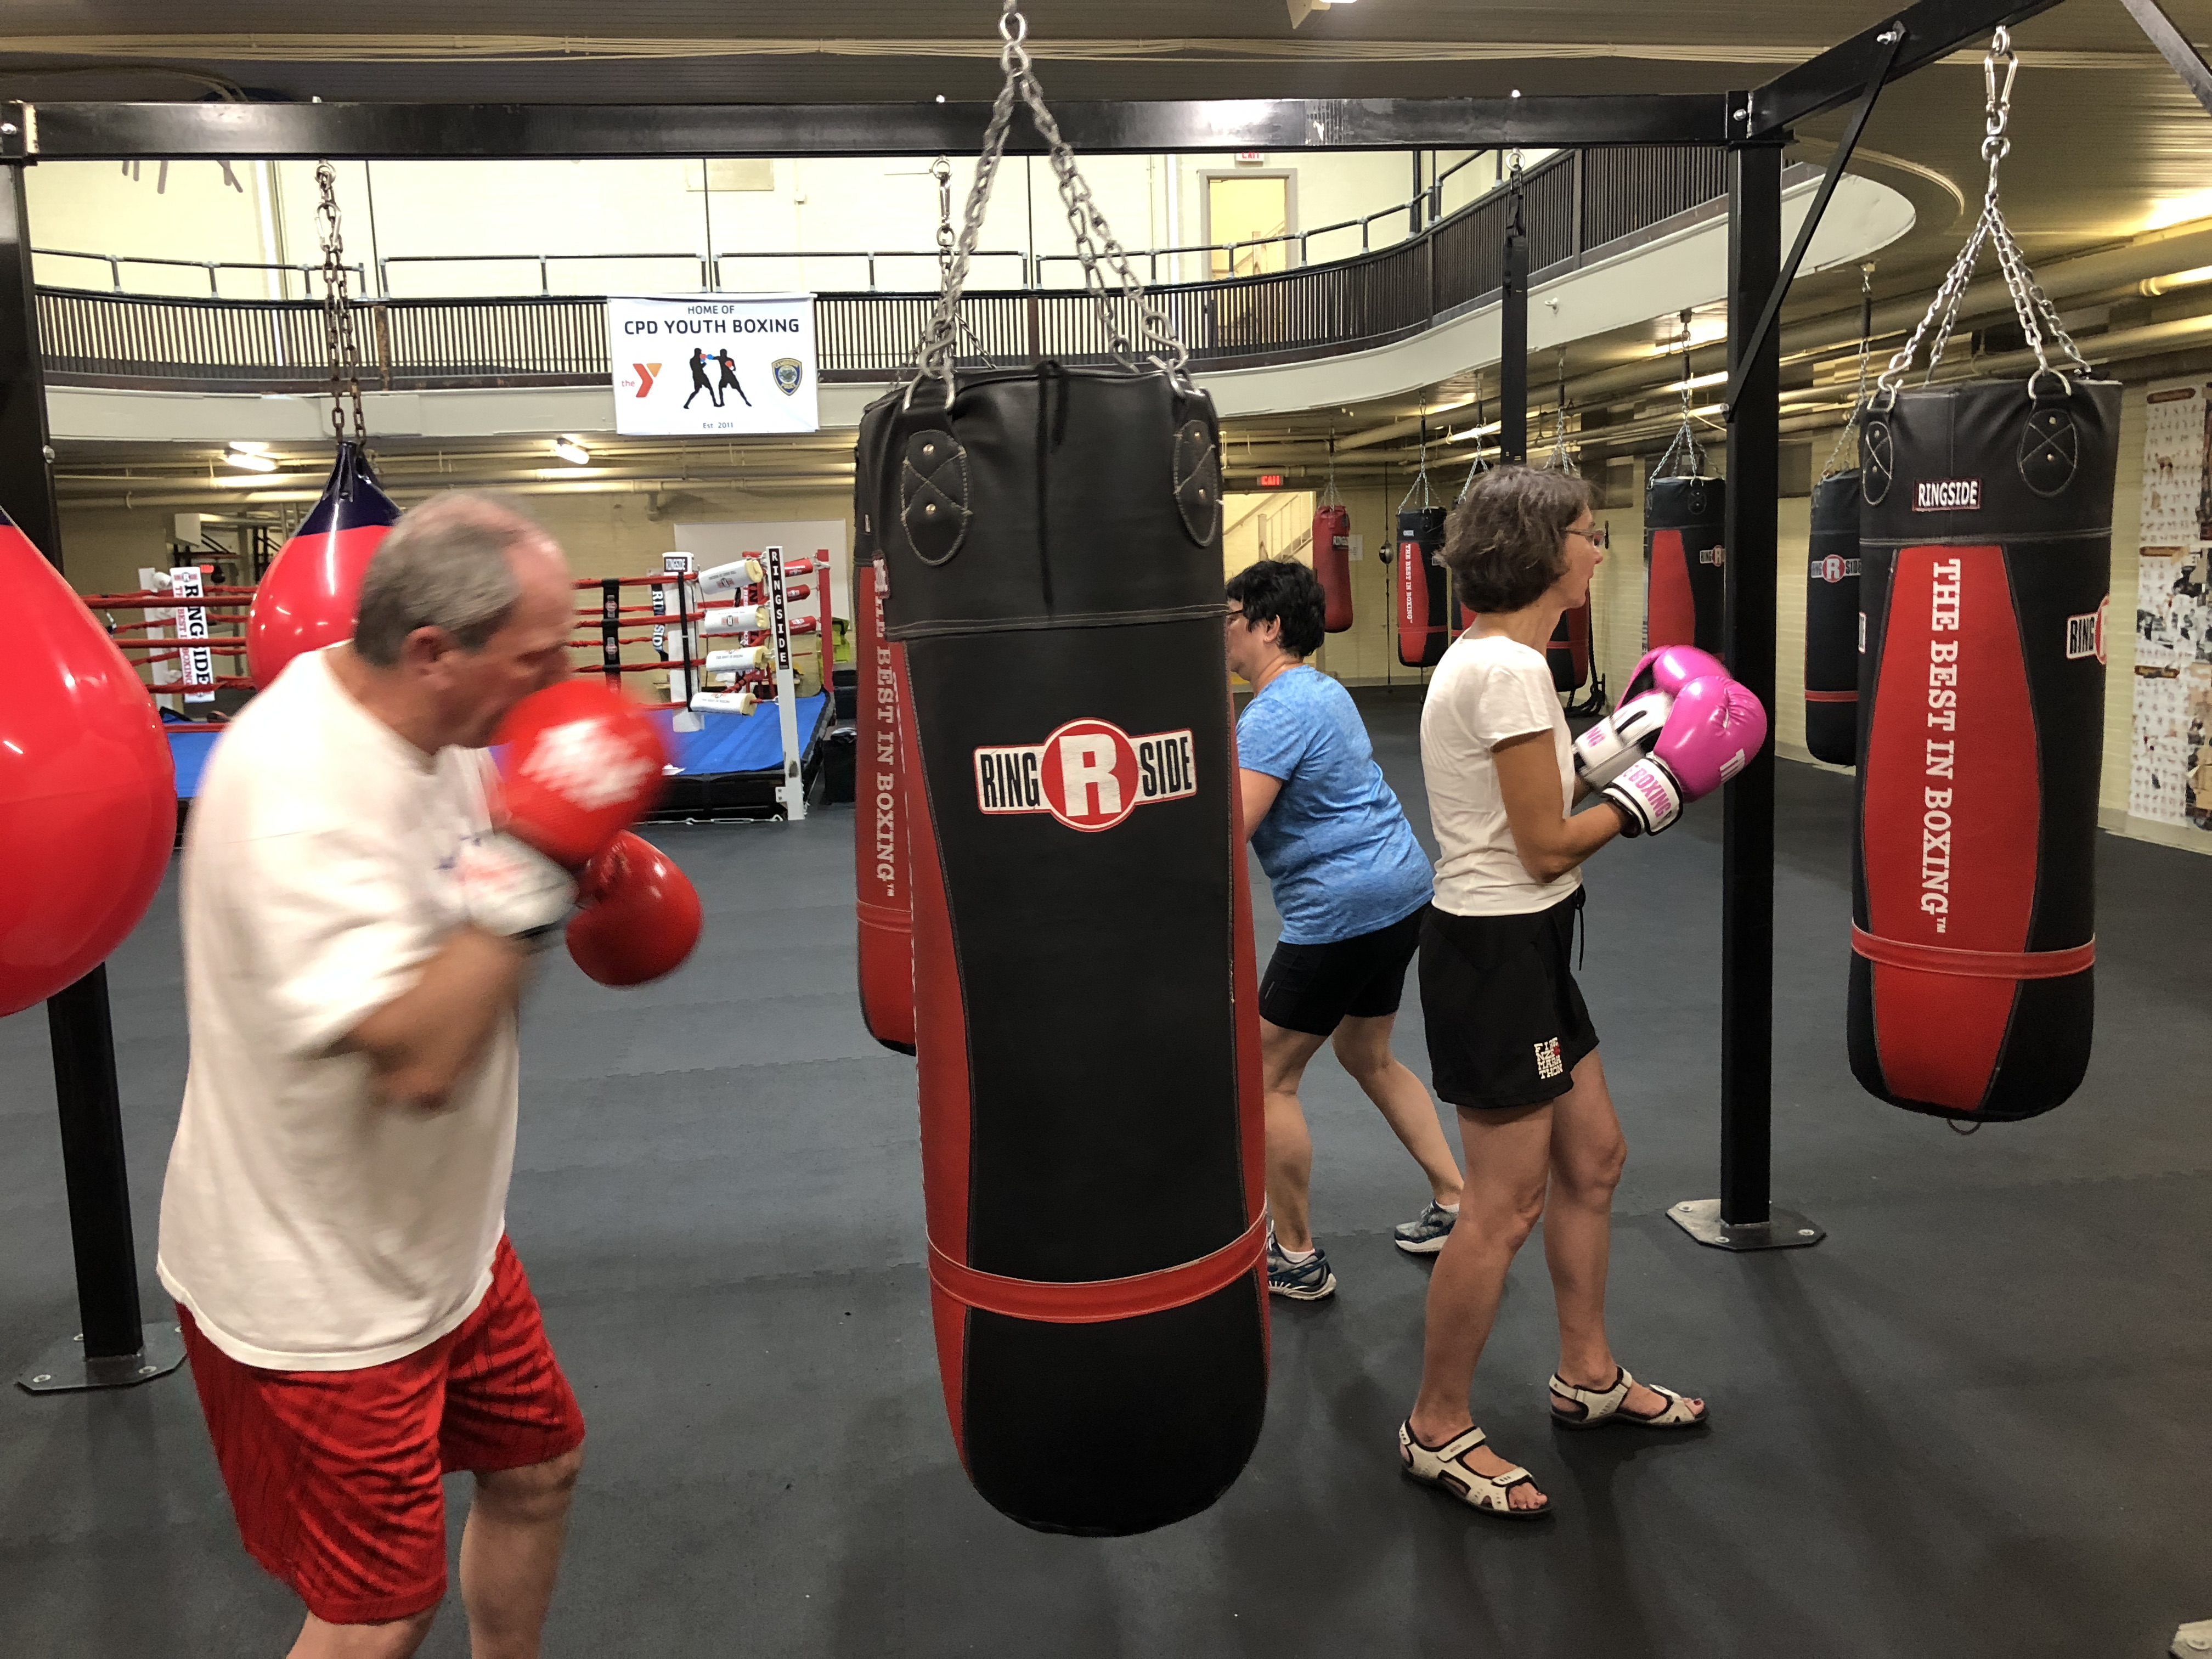 Photo: Three Rock Steady Boxing students punching individual bags.